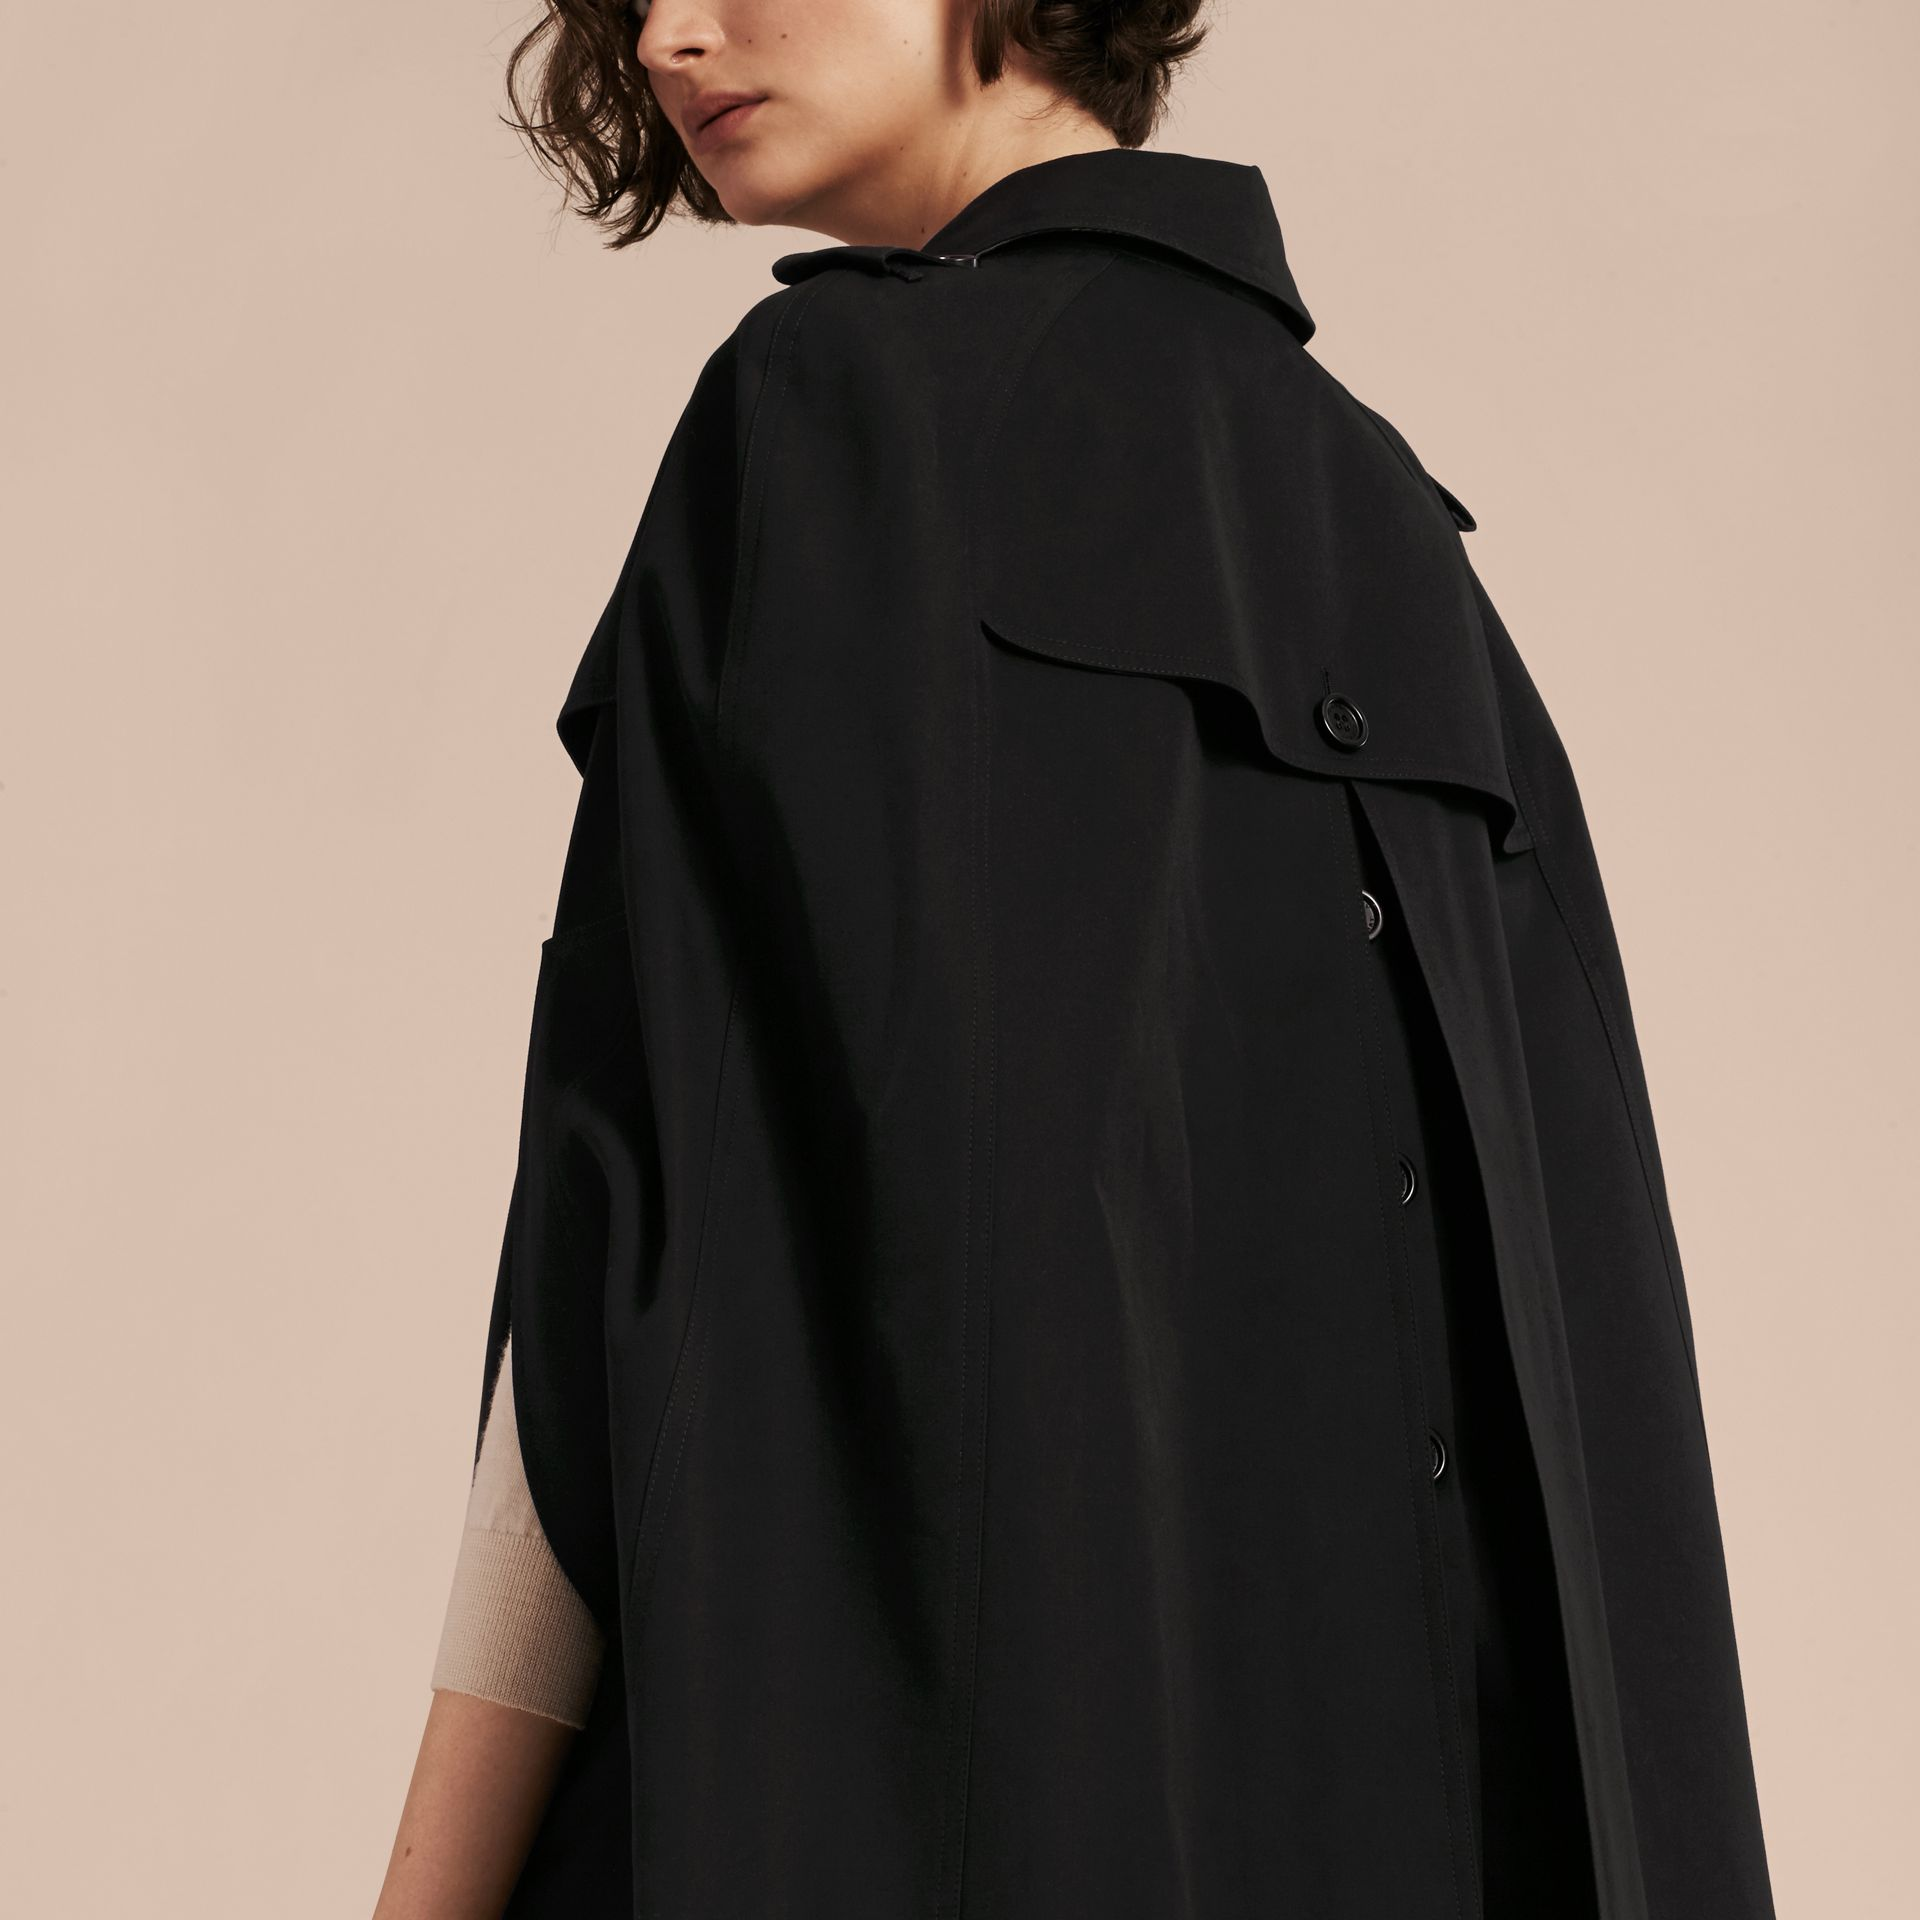 Noir Cape trench en gabardine de coton - photo de la galerie 6